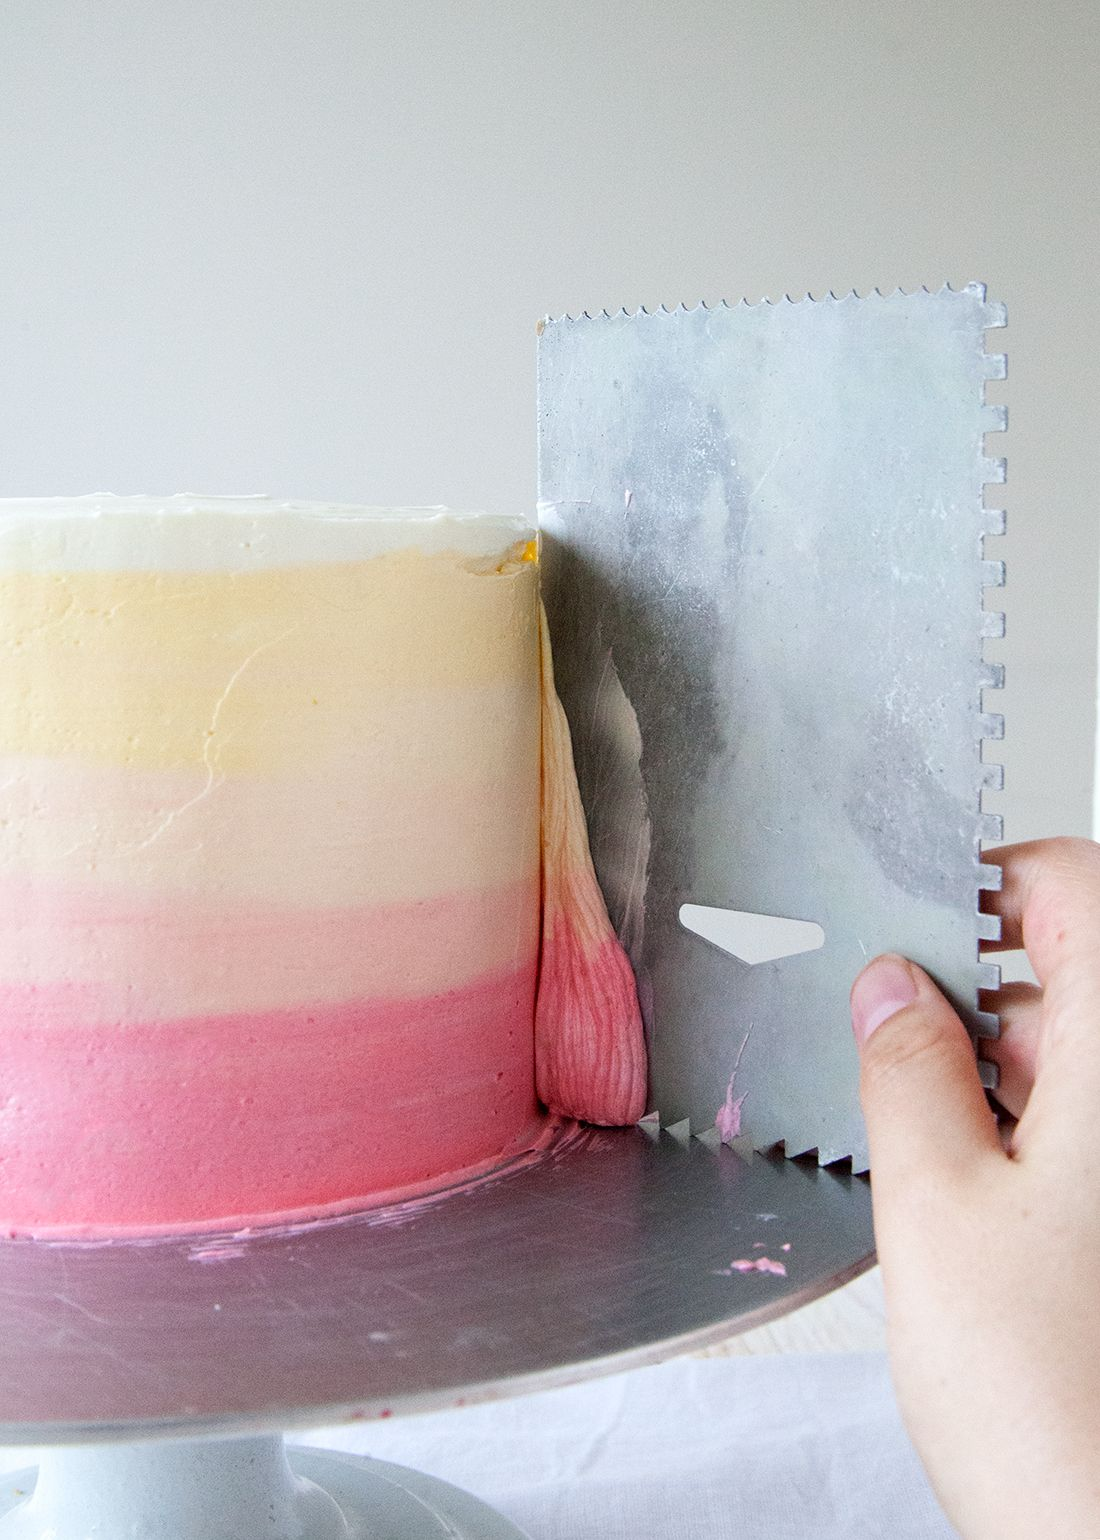 Step By Step Tutorial On How To Do Ombre Icing On A Cake Cake Decorating Tutorials No Bake Cake Cake Decorating Cake Decorating Techniques